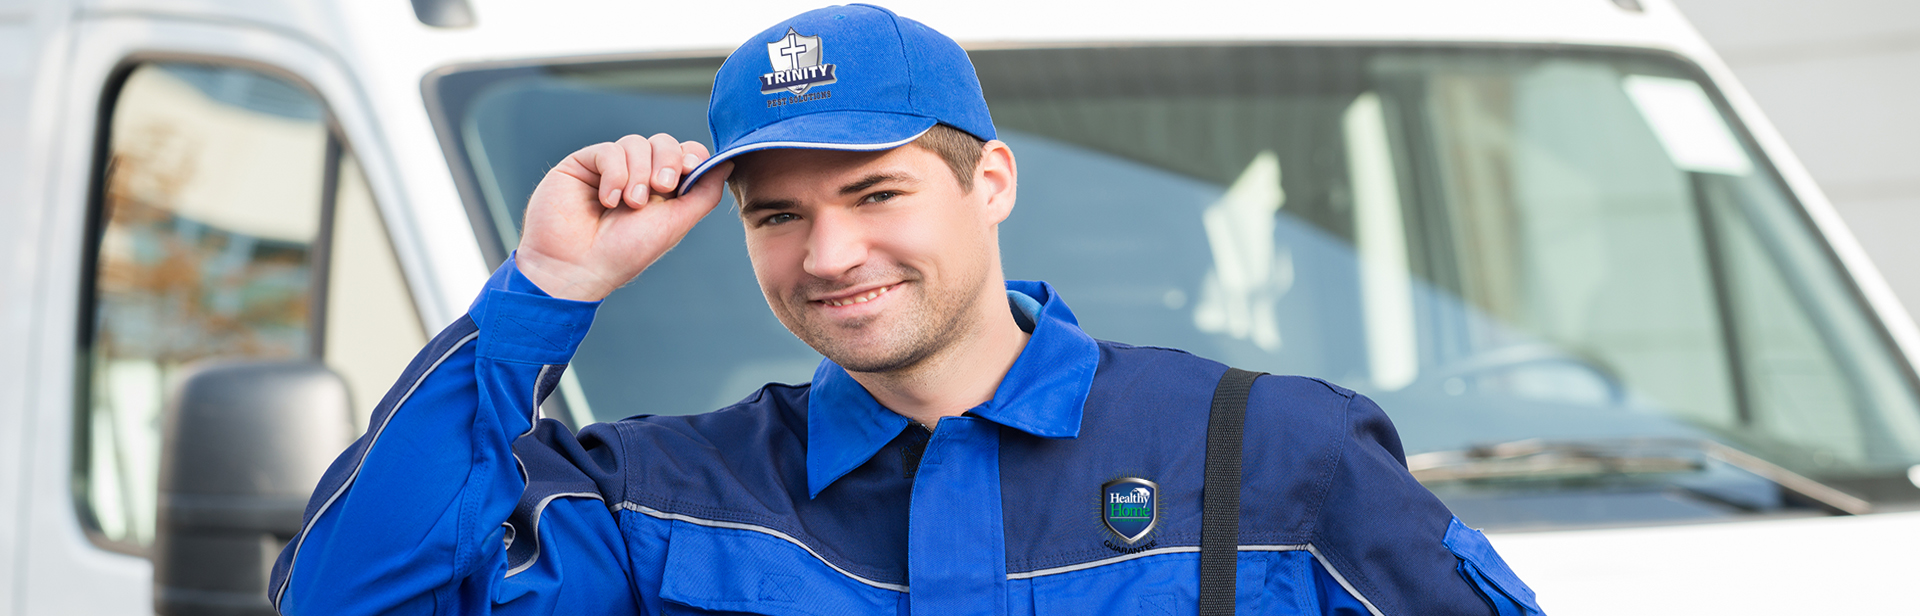 Pest Control Services in Homestead - Trinity Pest Solutions